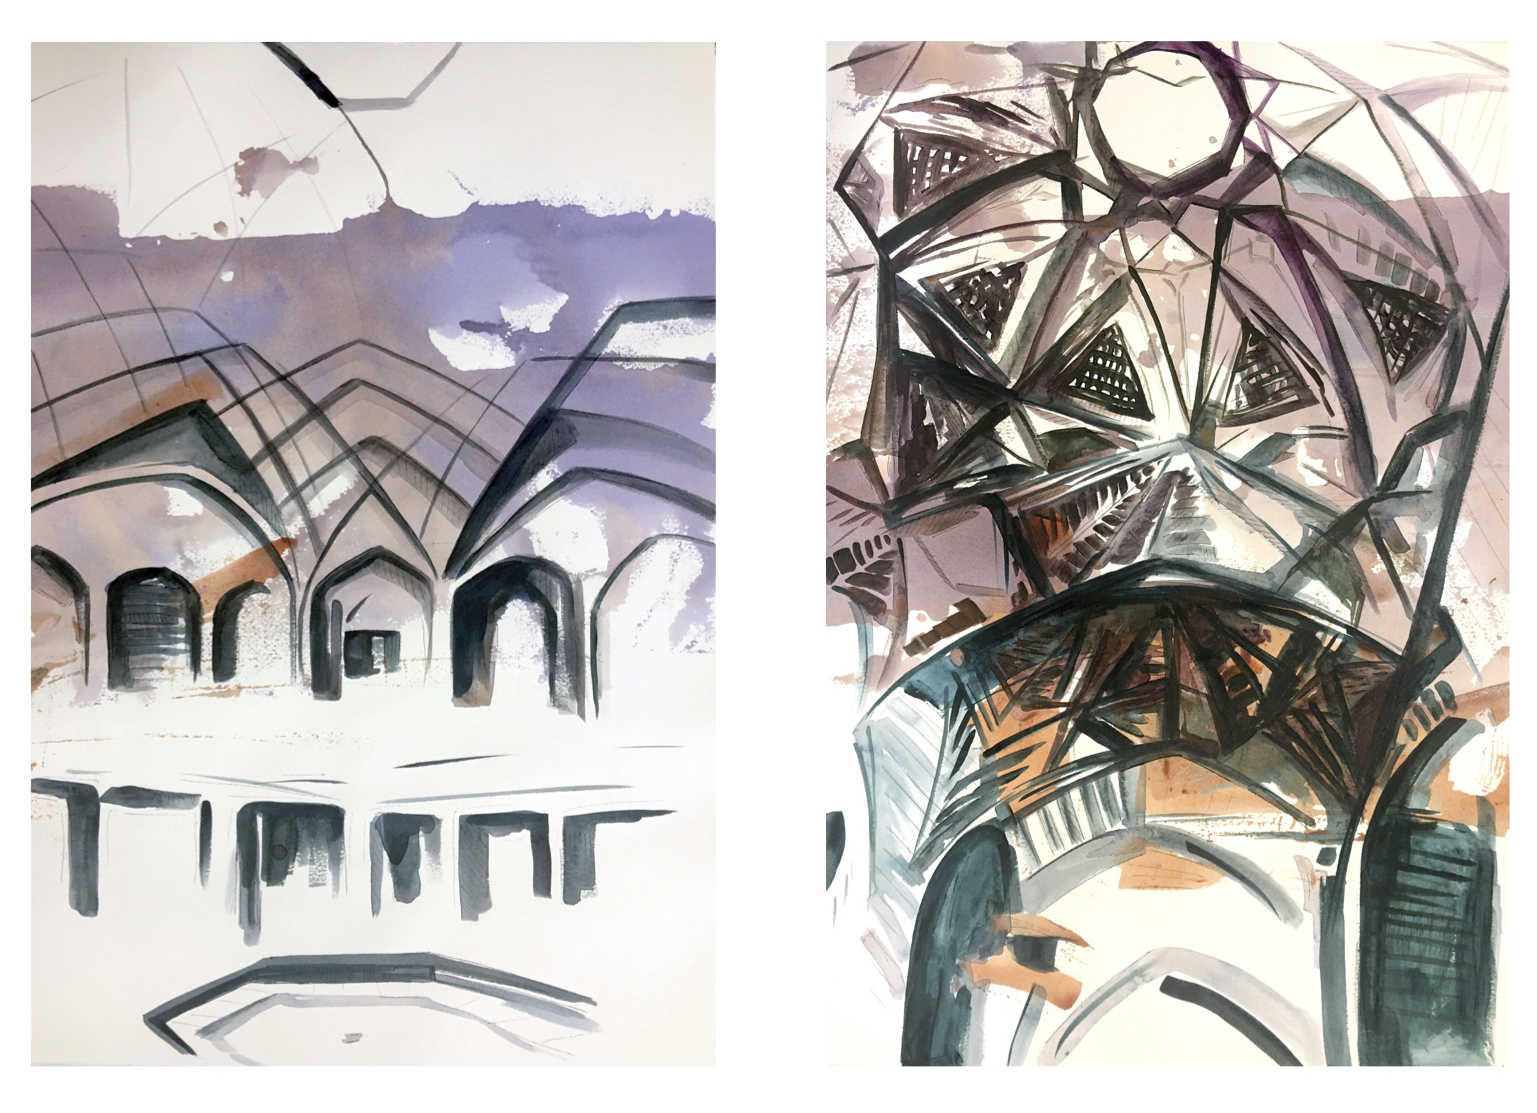 The Complexity of Looking, acrylic on paper, 22x15 inches each, 2020